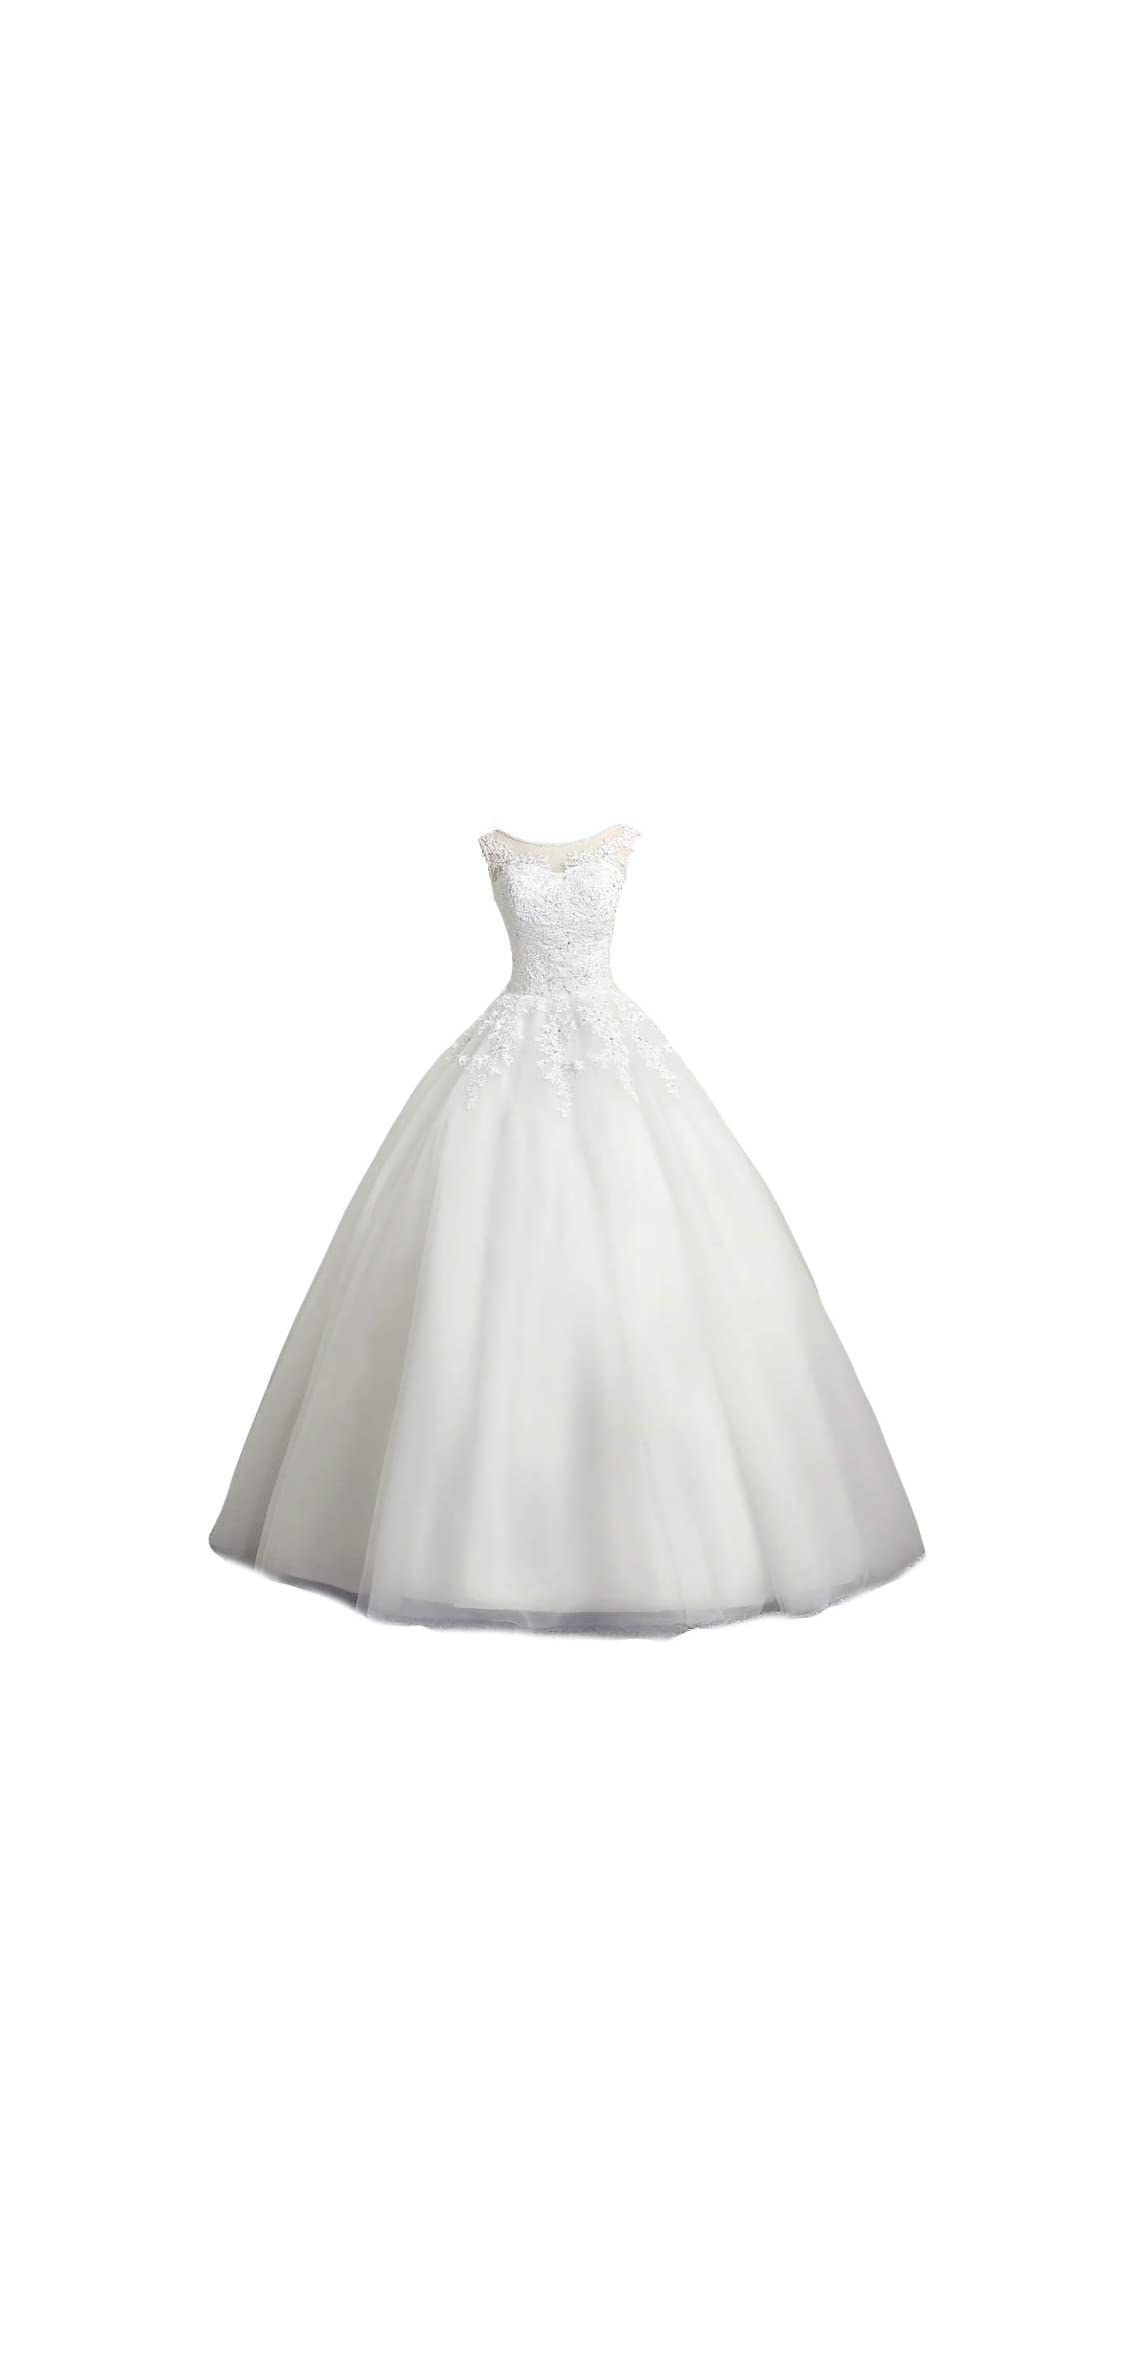 Women's Scoop Neck Ball Gown Wedding Dress Lace Bridal